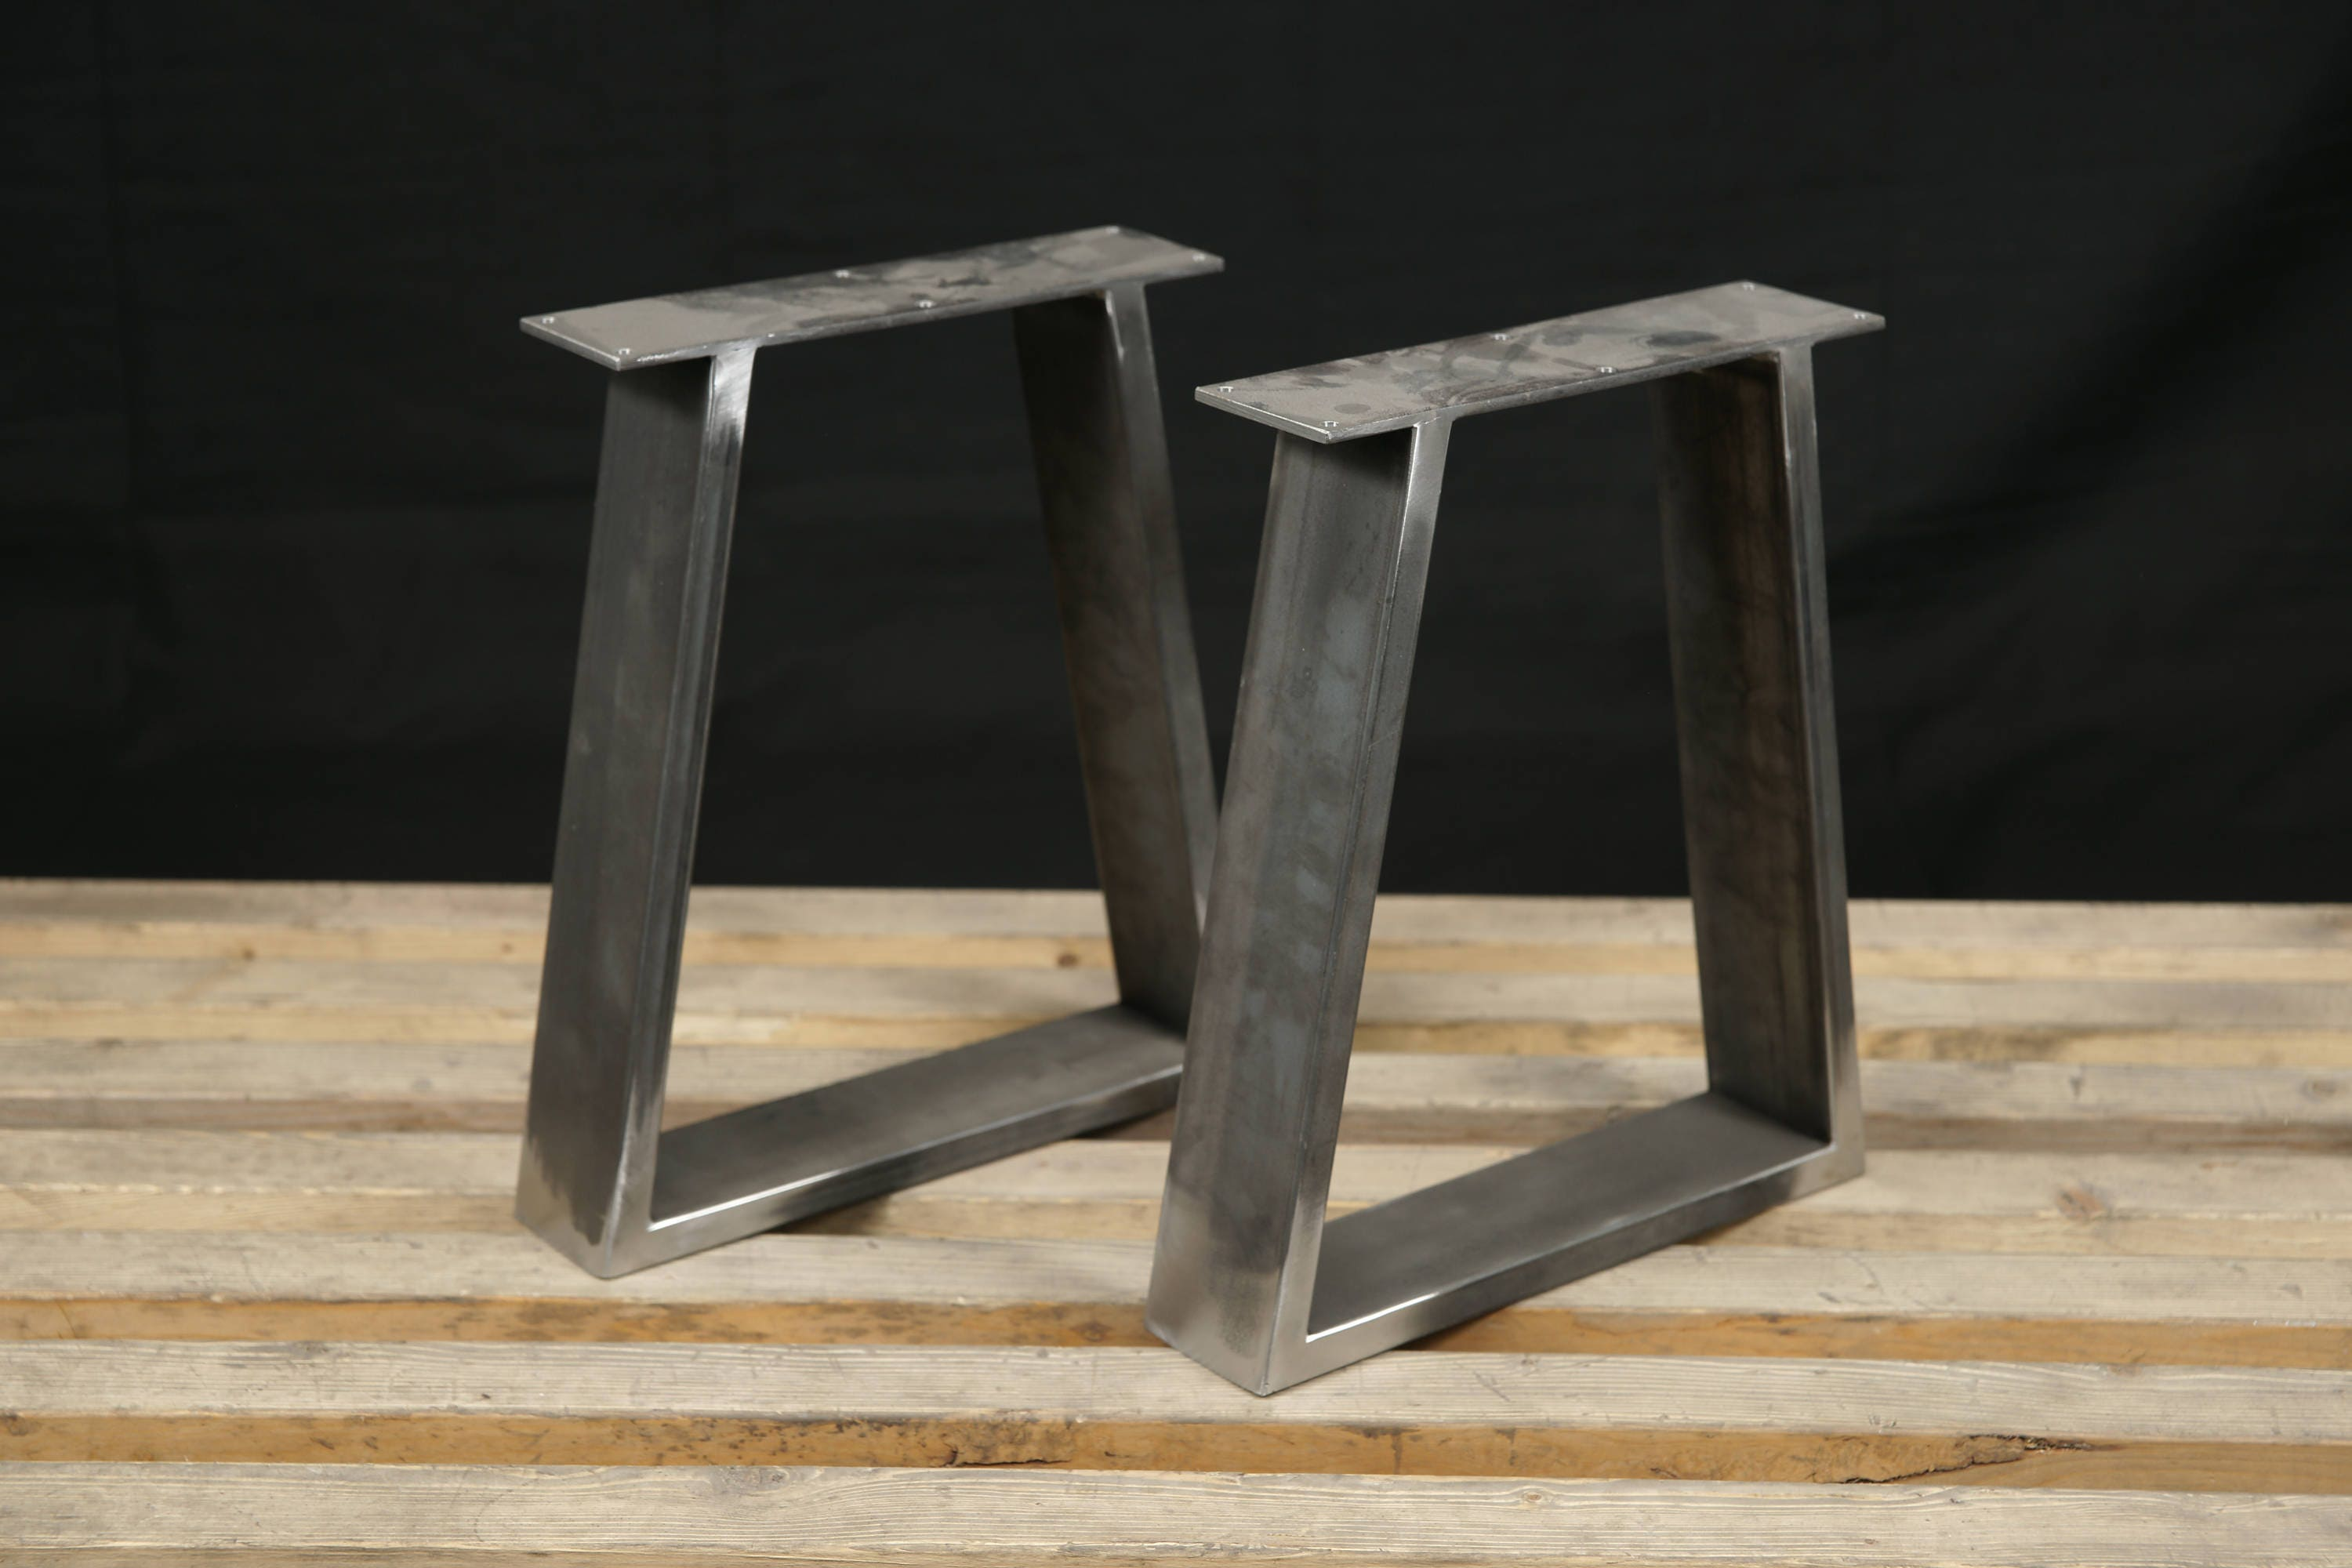 Steel Bench Legs Coffee Table Legs Metal Legs Square Bench